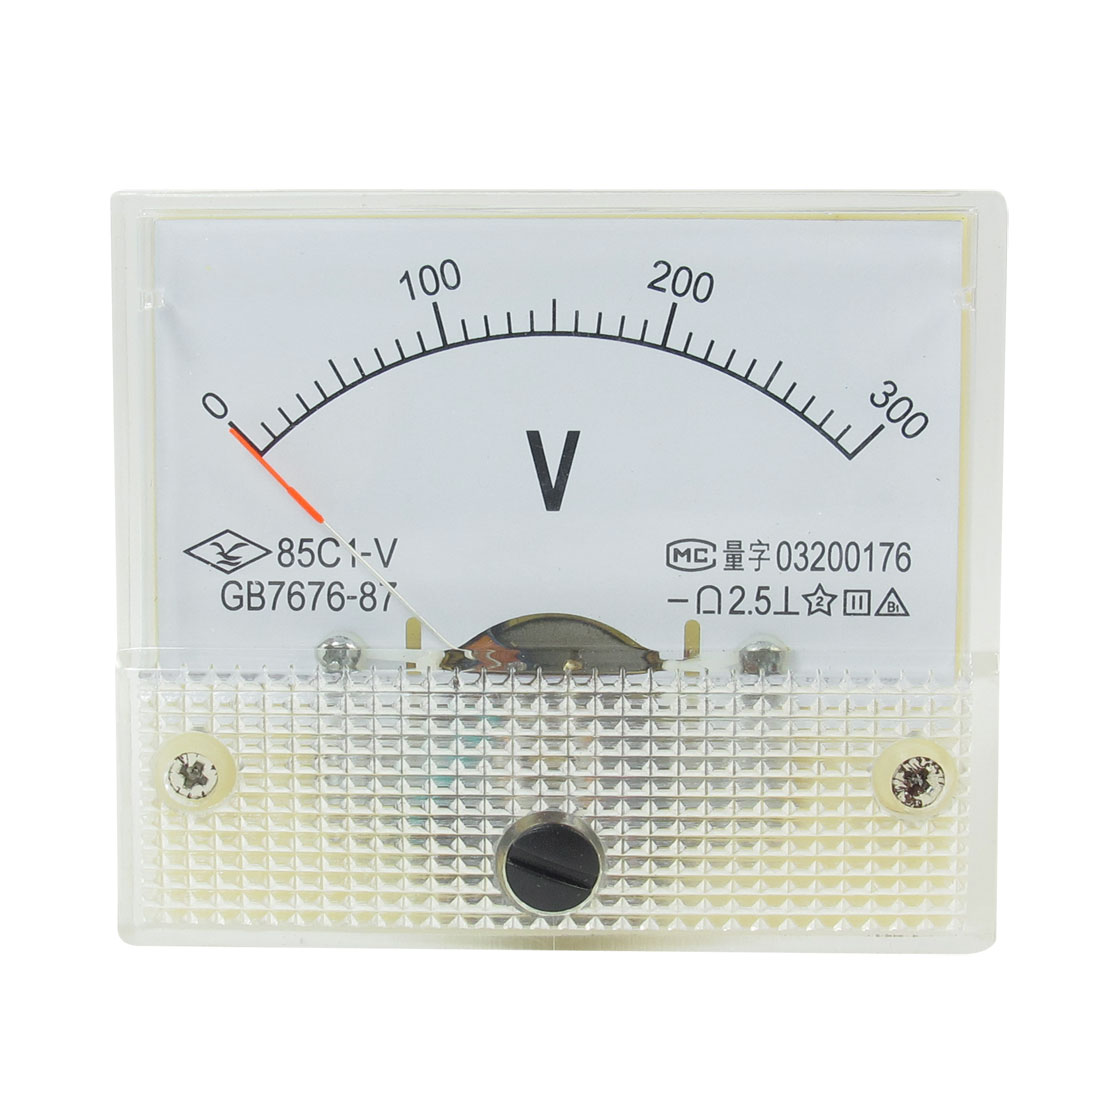 64mm x 56mm Dial Panel Gauge Voltage Voltmeter DC 0-300V 85C1-V